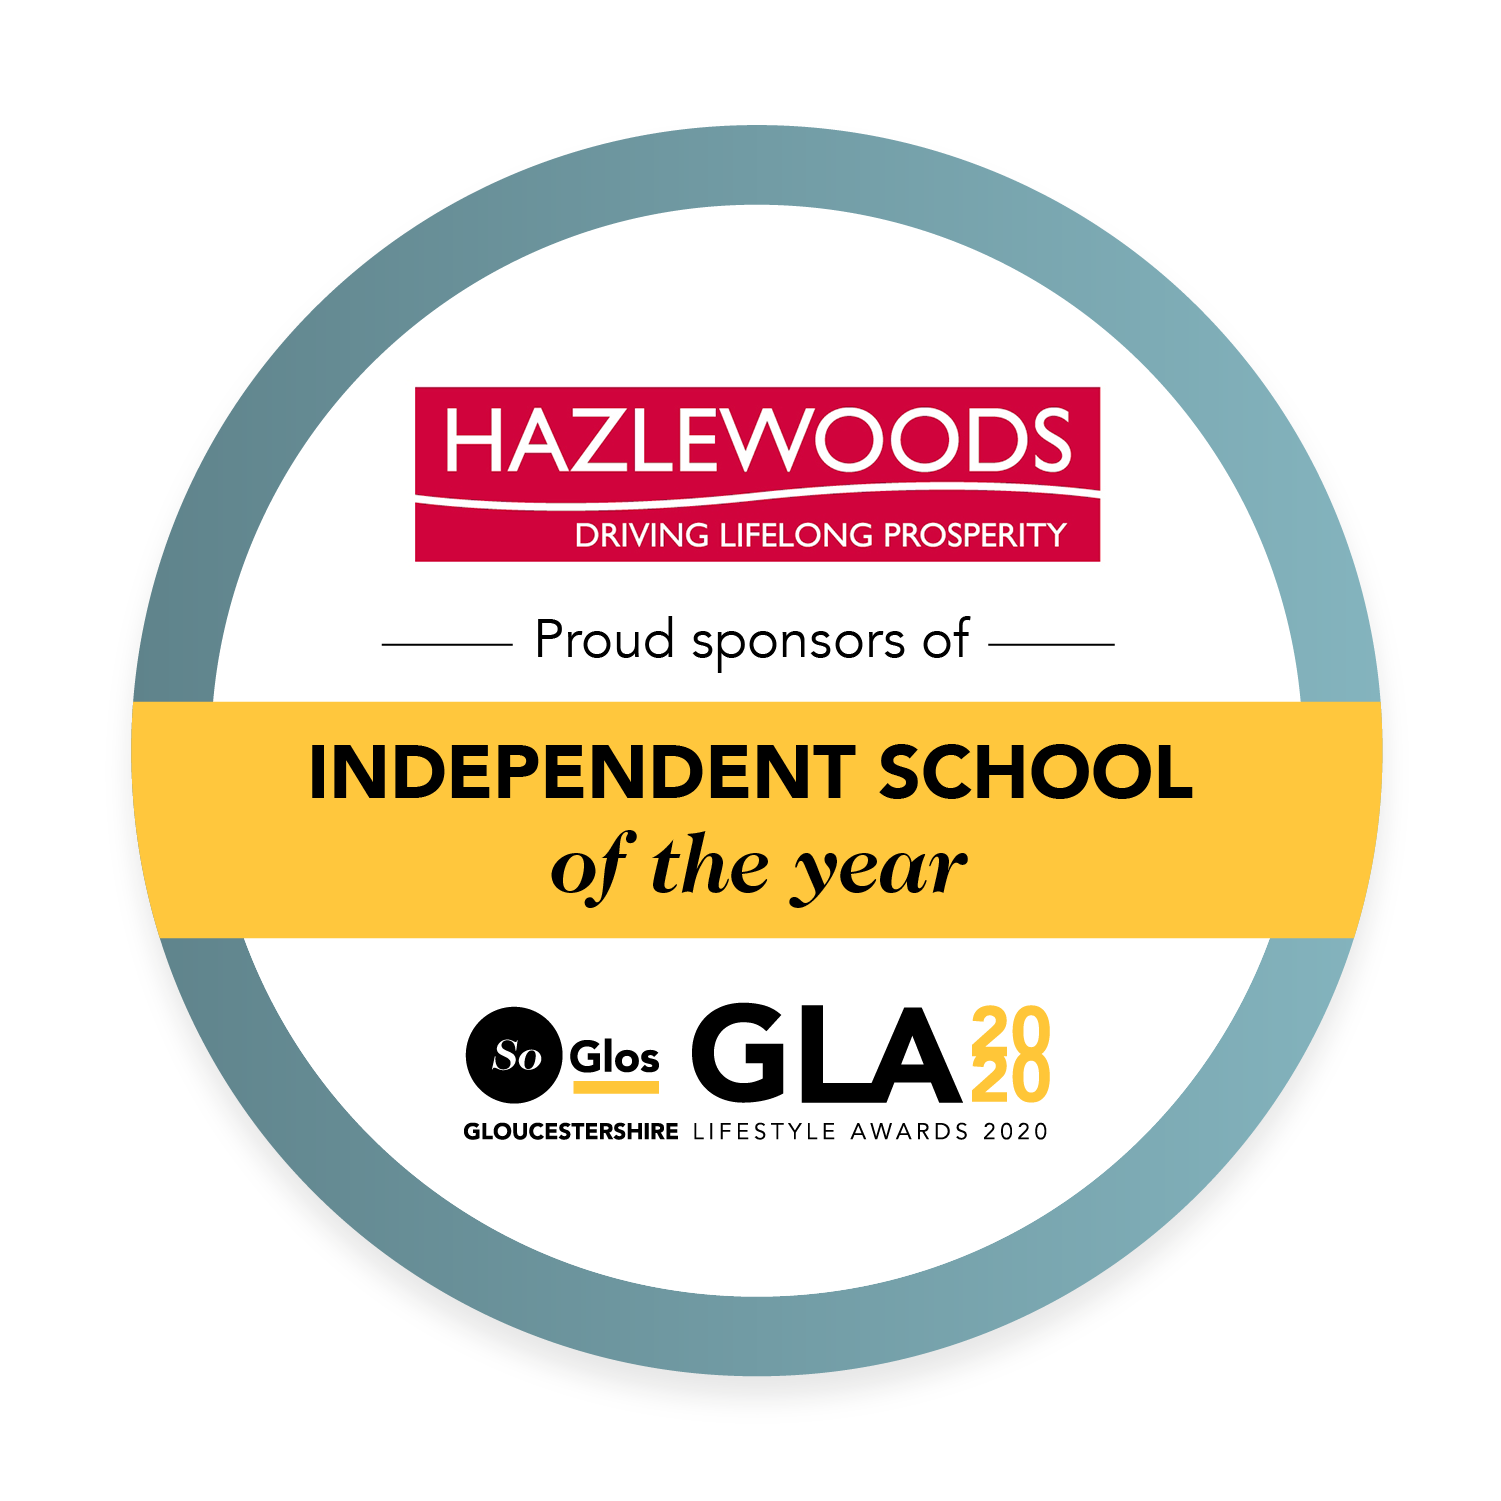 Independent School of the Year